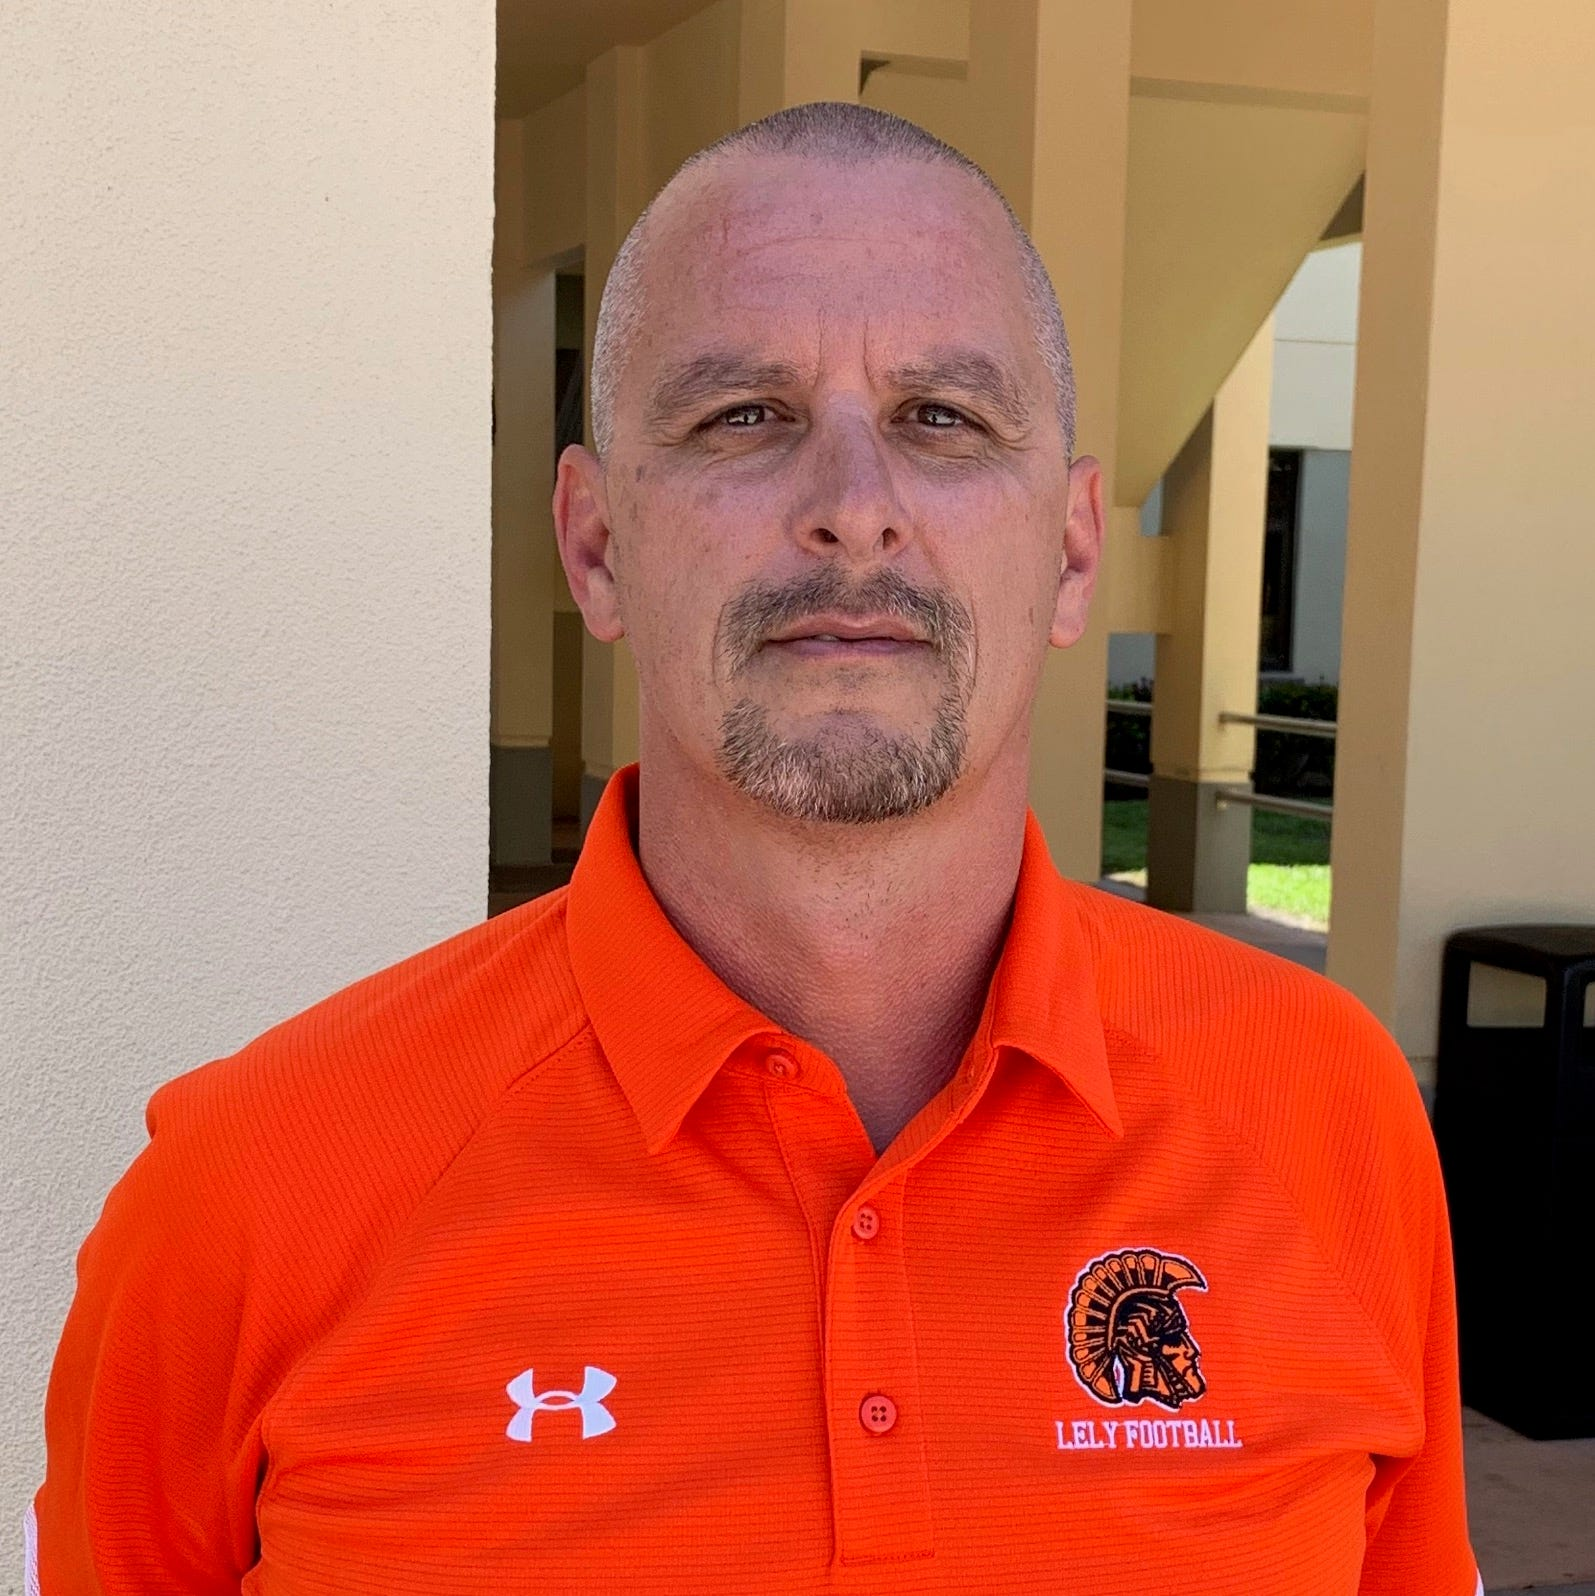 High school football: J.J. Everage brings experience to Lely head coaching job